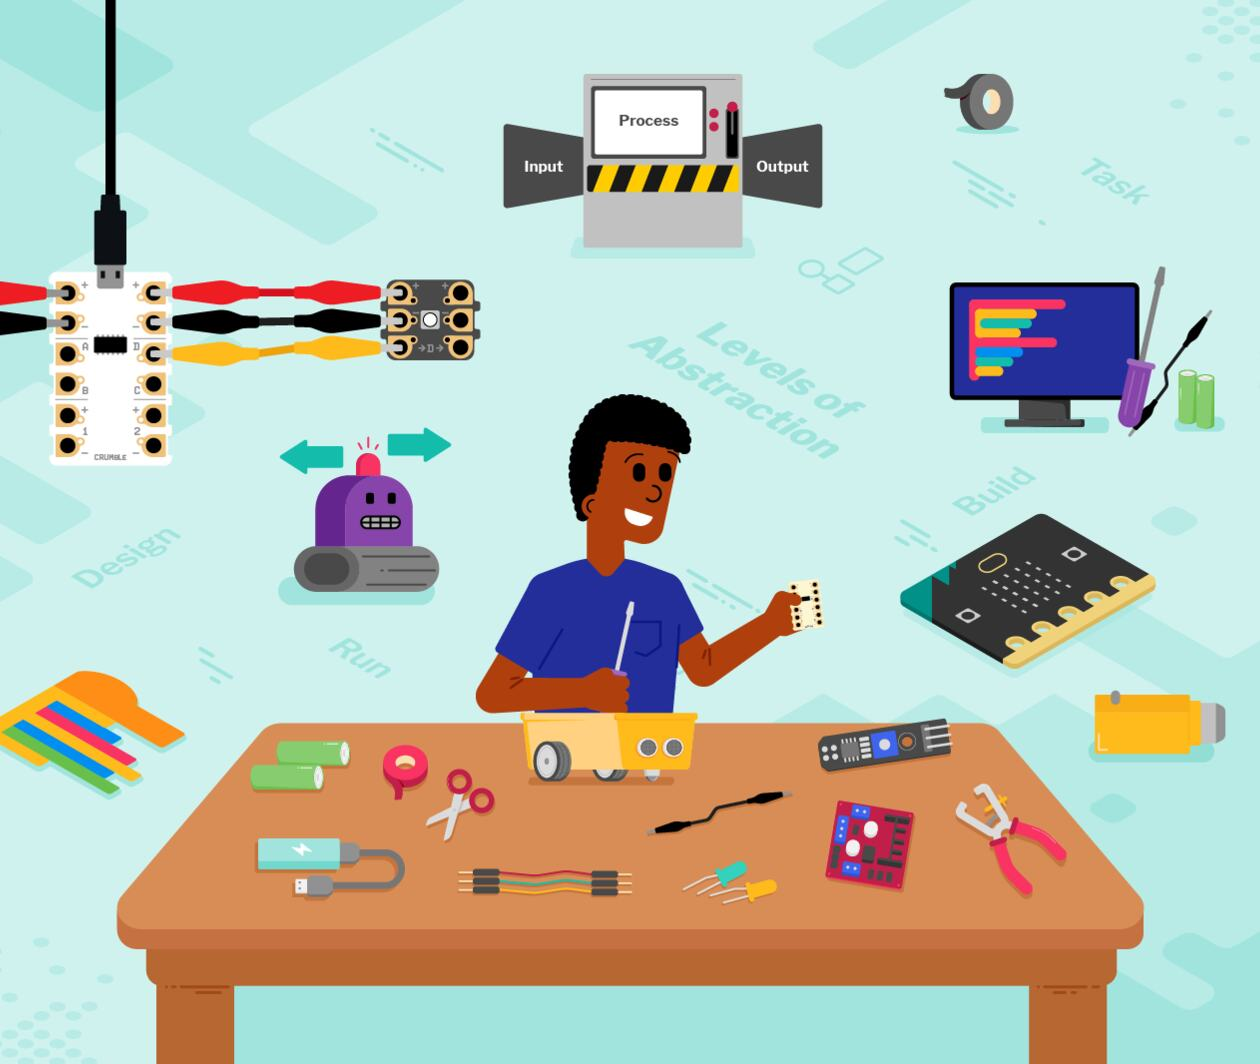 Teaching Physical Computing to 5- to 11-year-olds